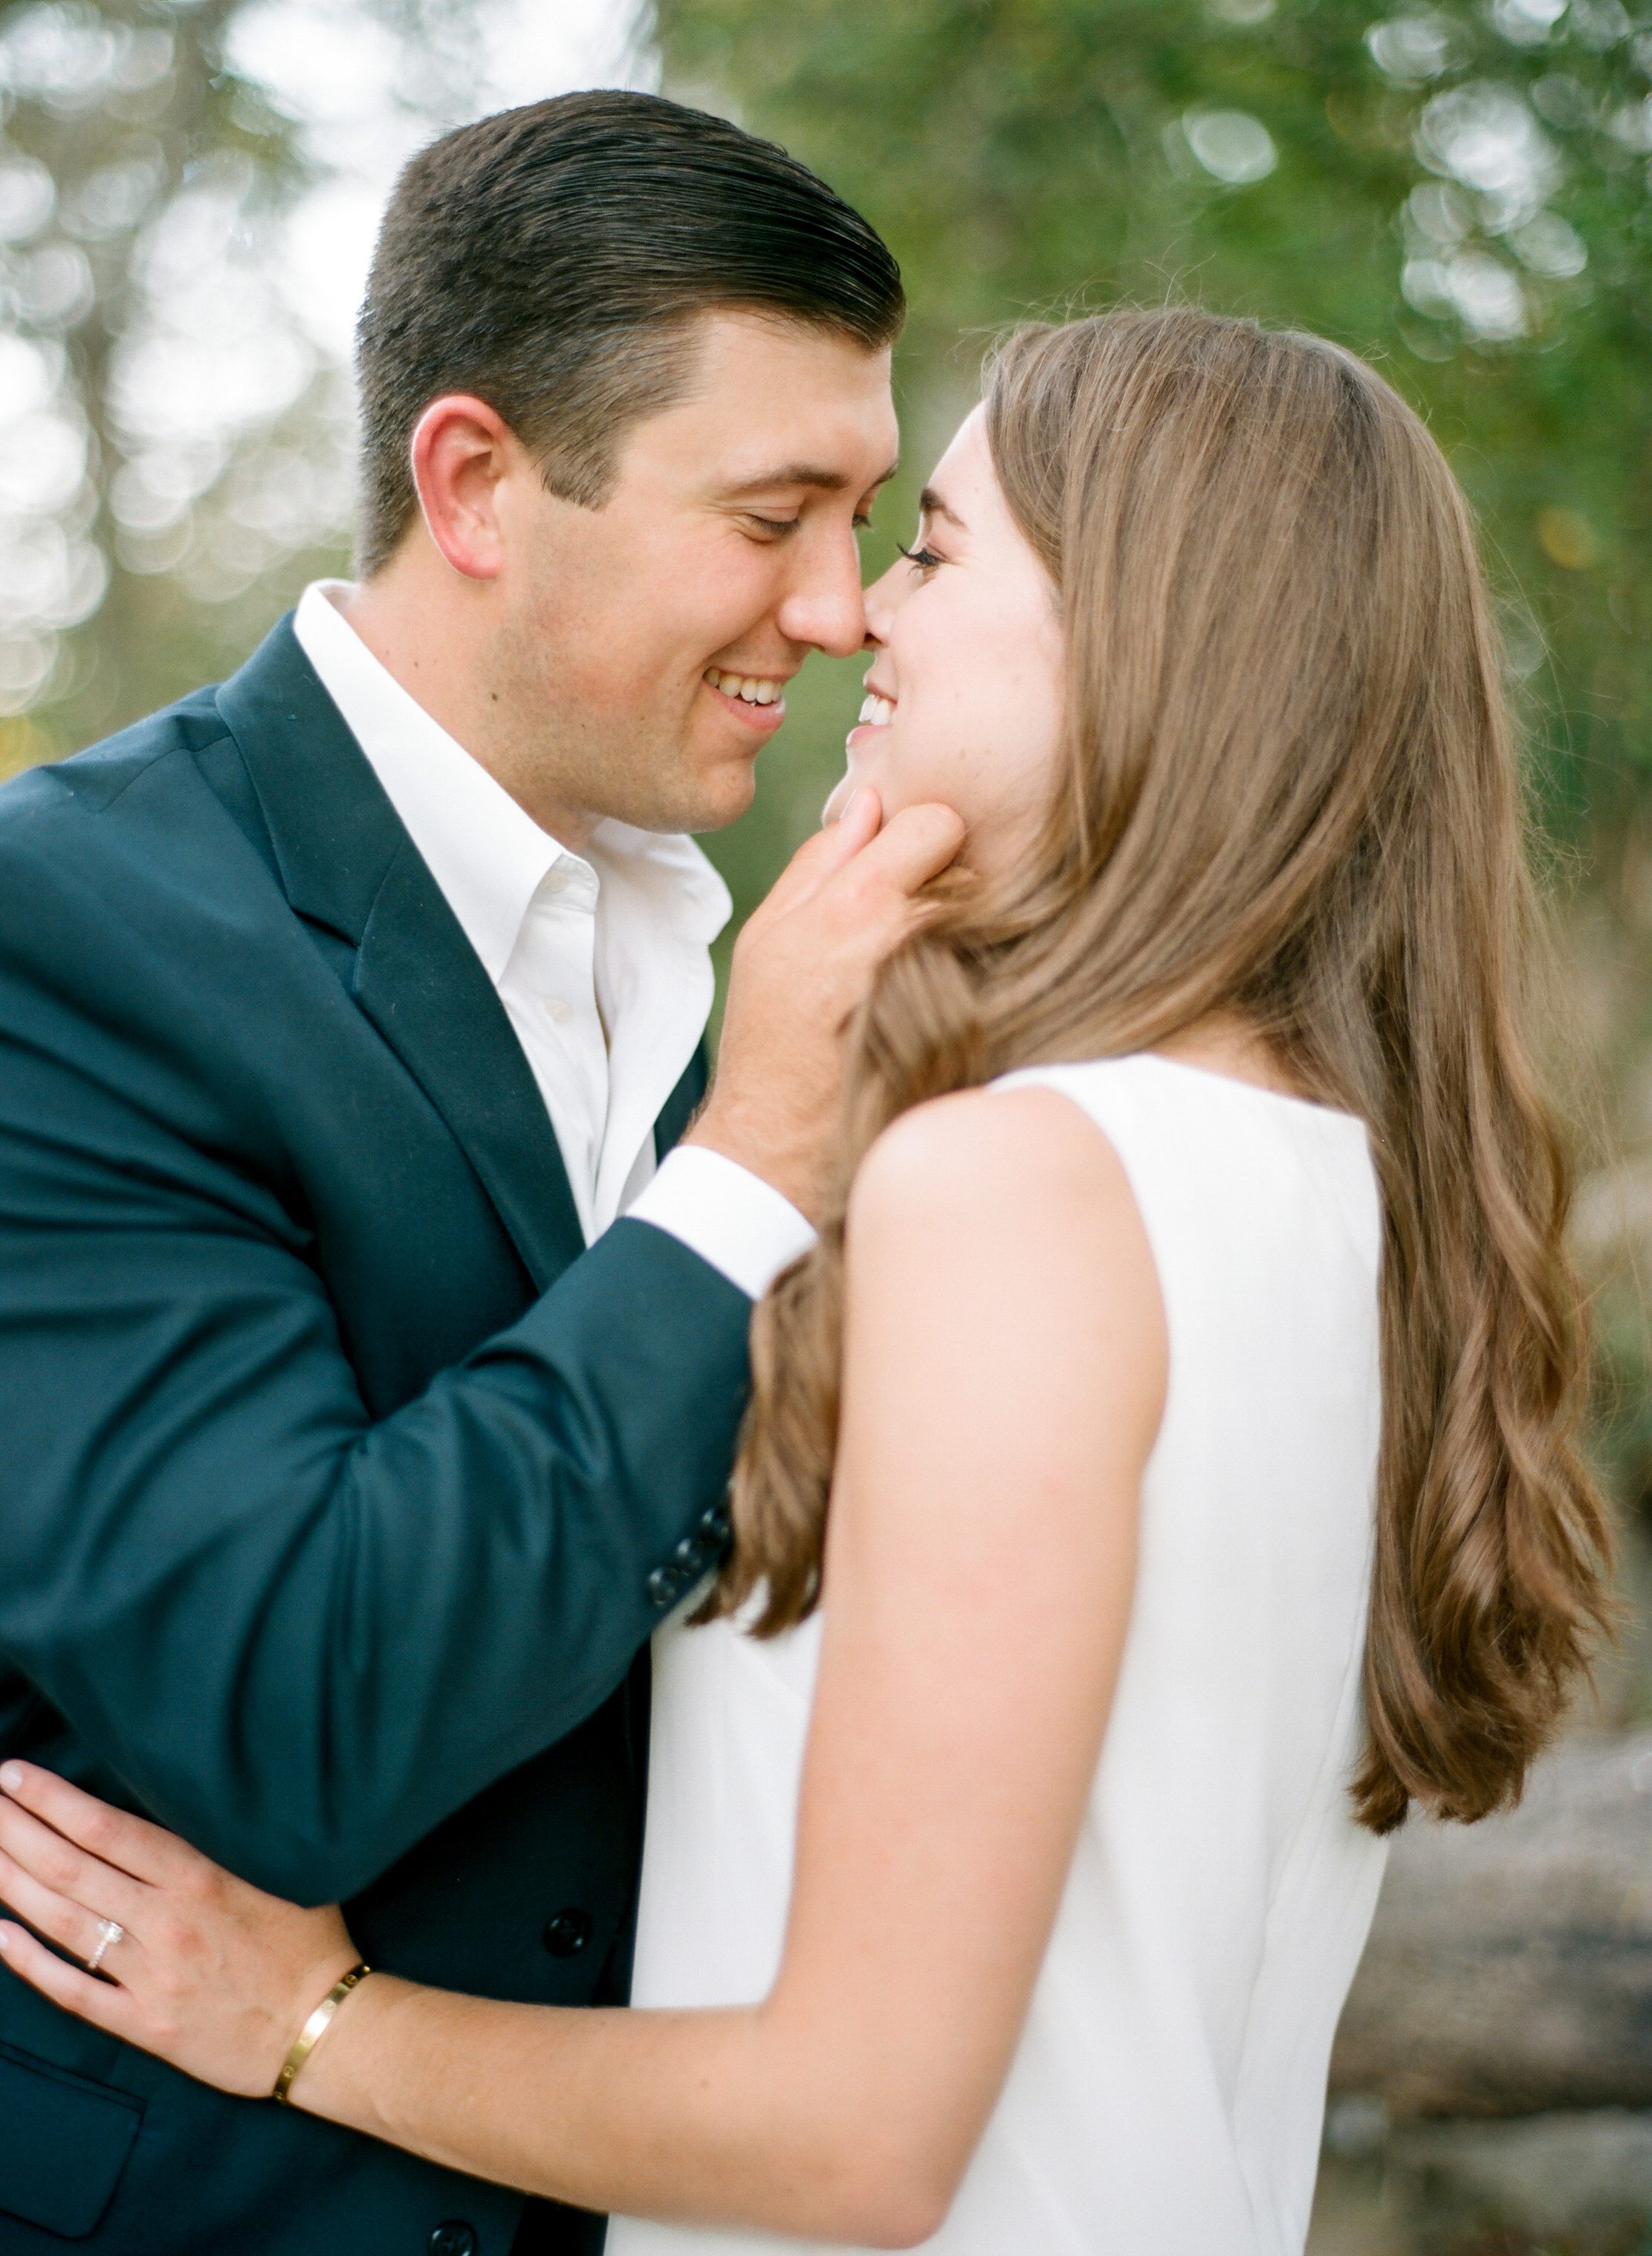 Dana-Fernandez-Photography-Houston-Engagement-Photographer-Film-8.jpg